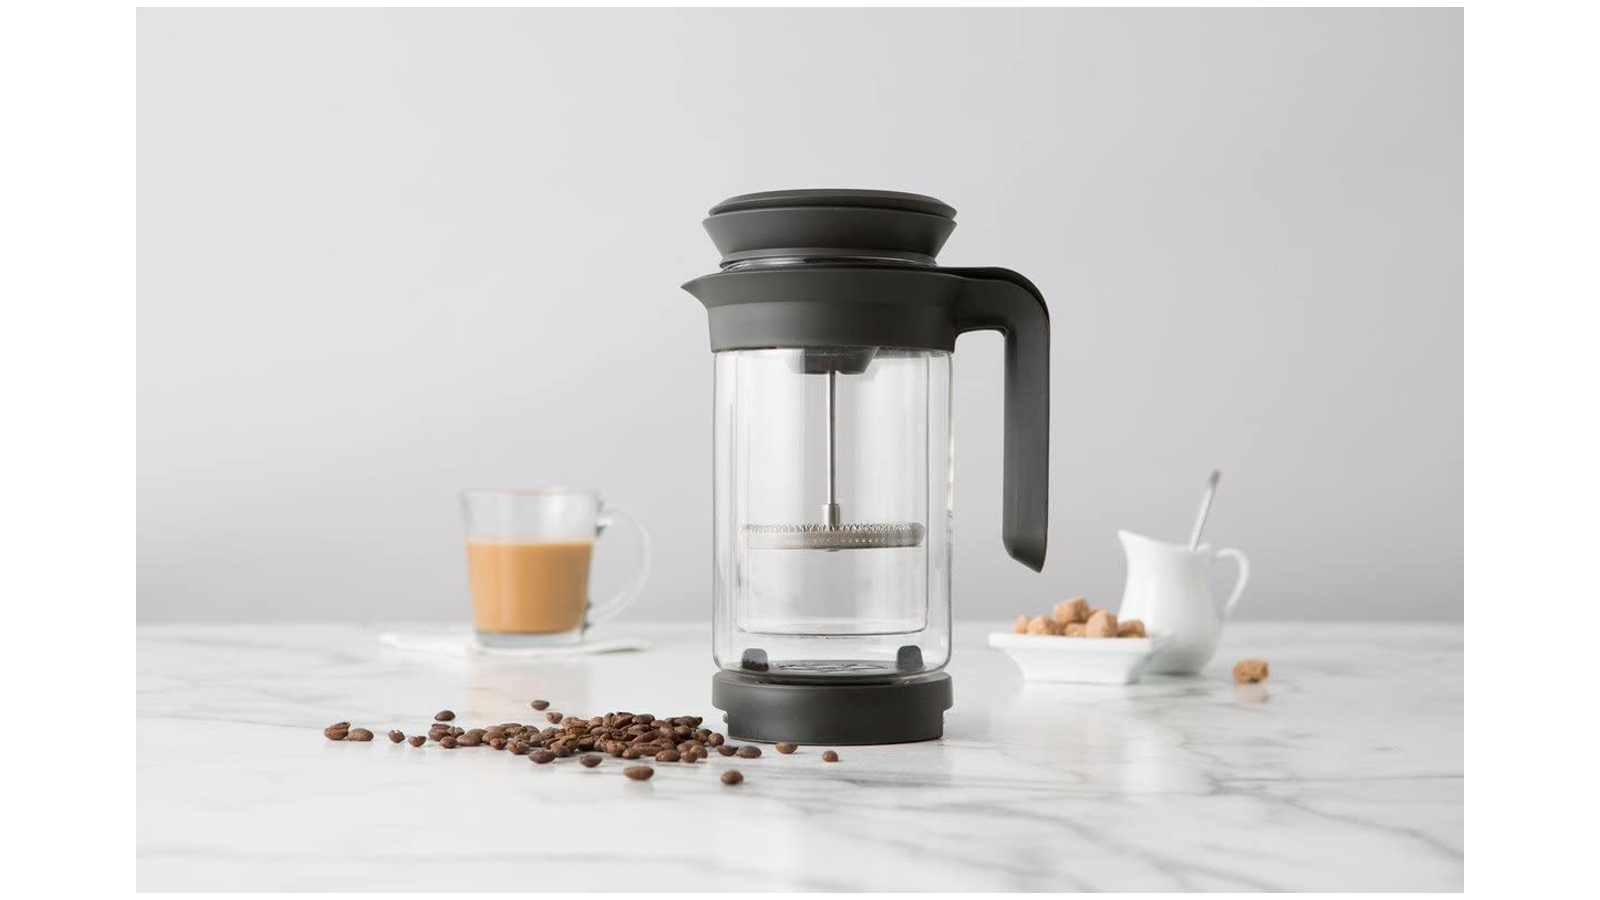 Chef'n 3-in-1 craft coffee maker brewing set for cold brew pour over and French press coffee